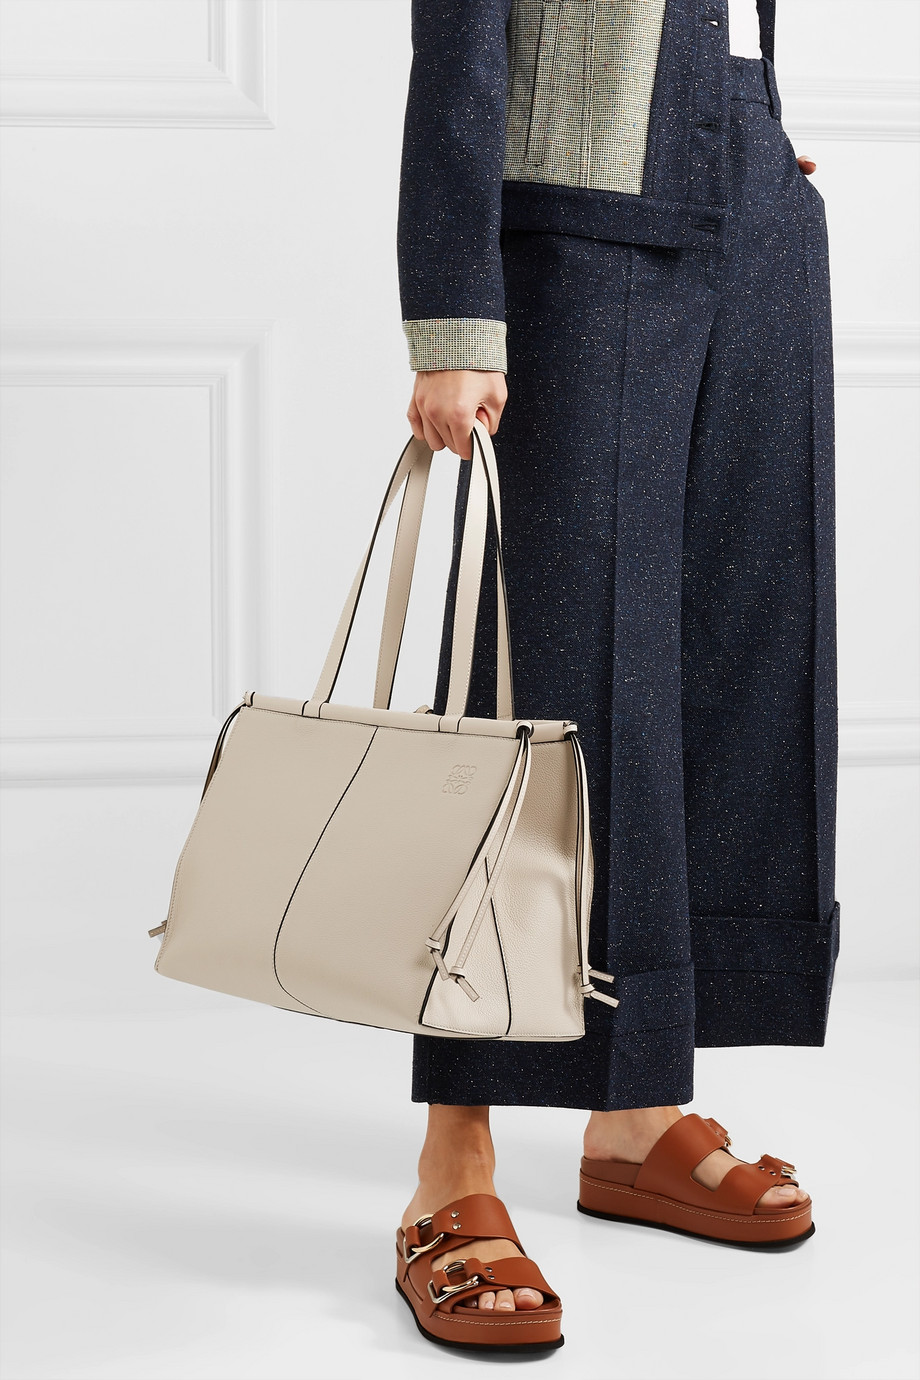 Loewe Sac à main en cuir texturé Cushion Medium